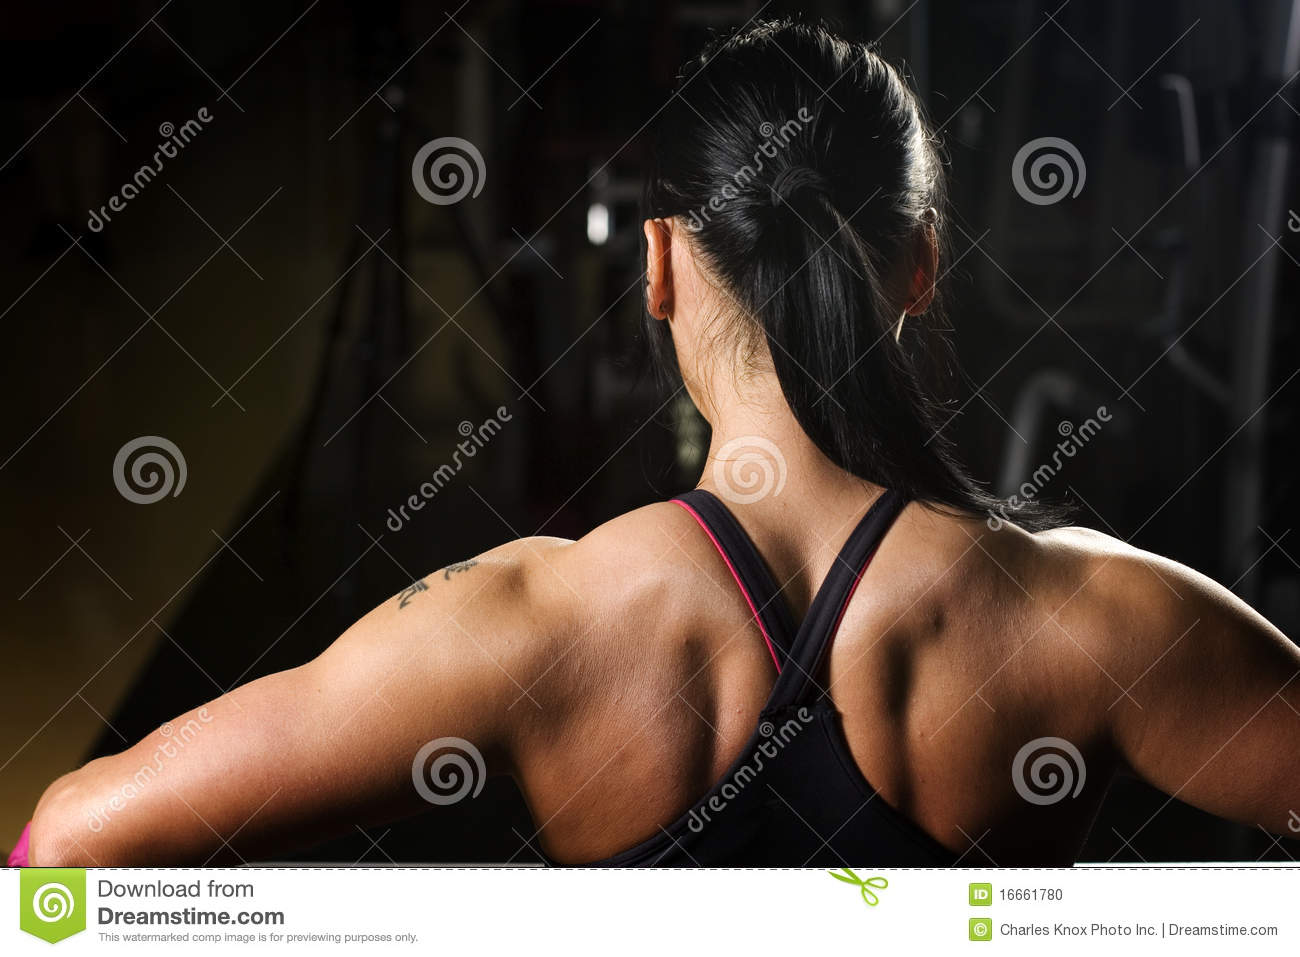 Asian Woman Working Out In Gym Stock Photo - Image 16661780-3090